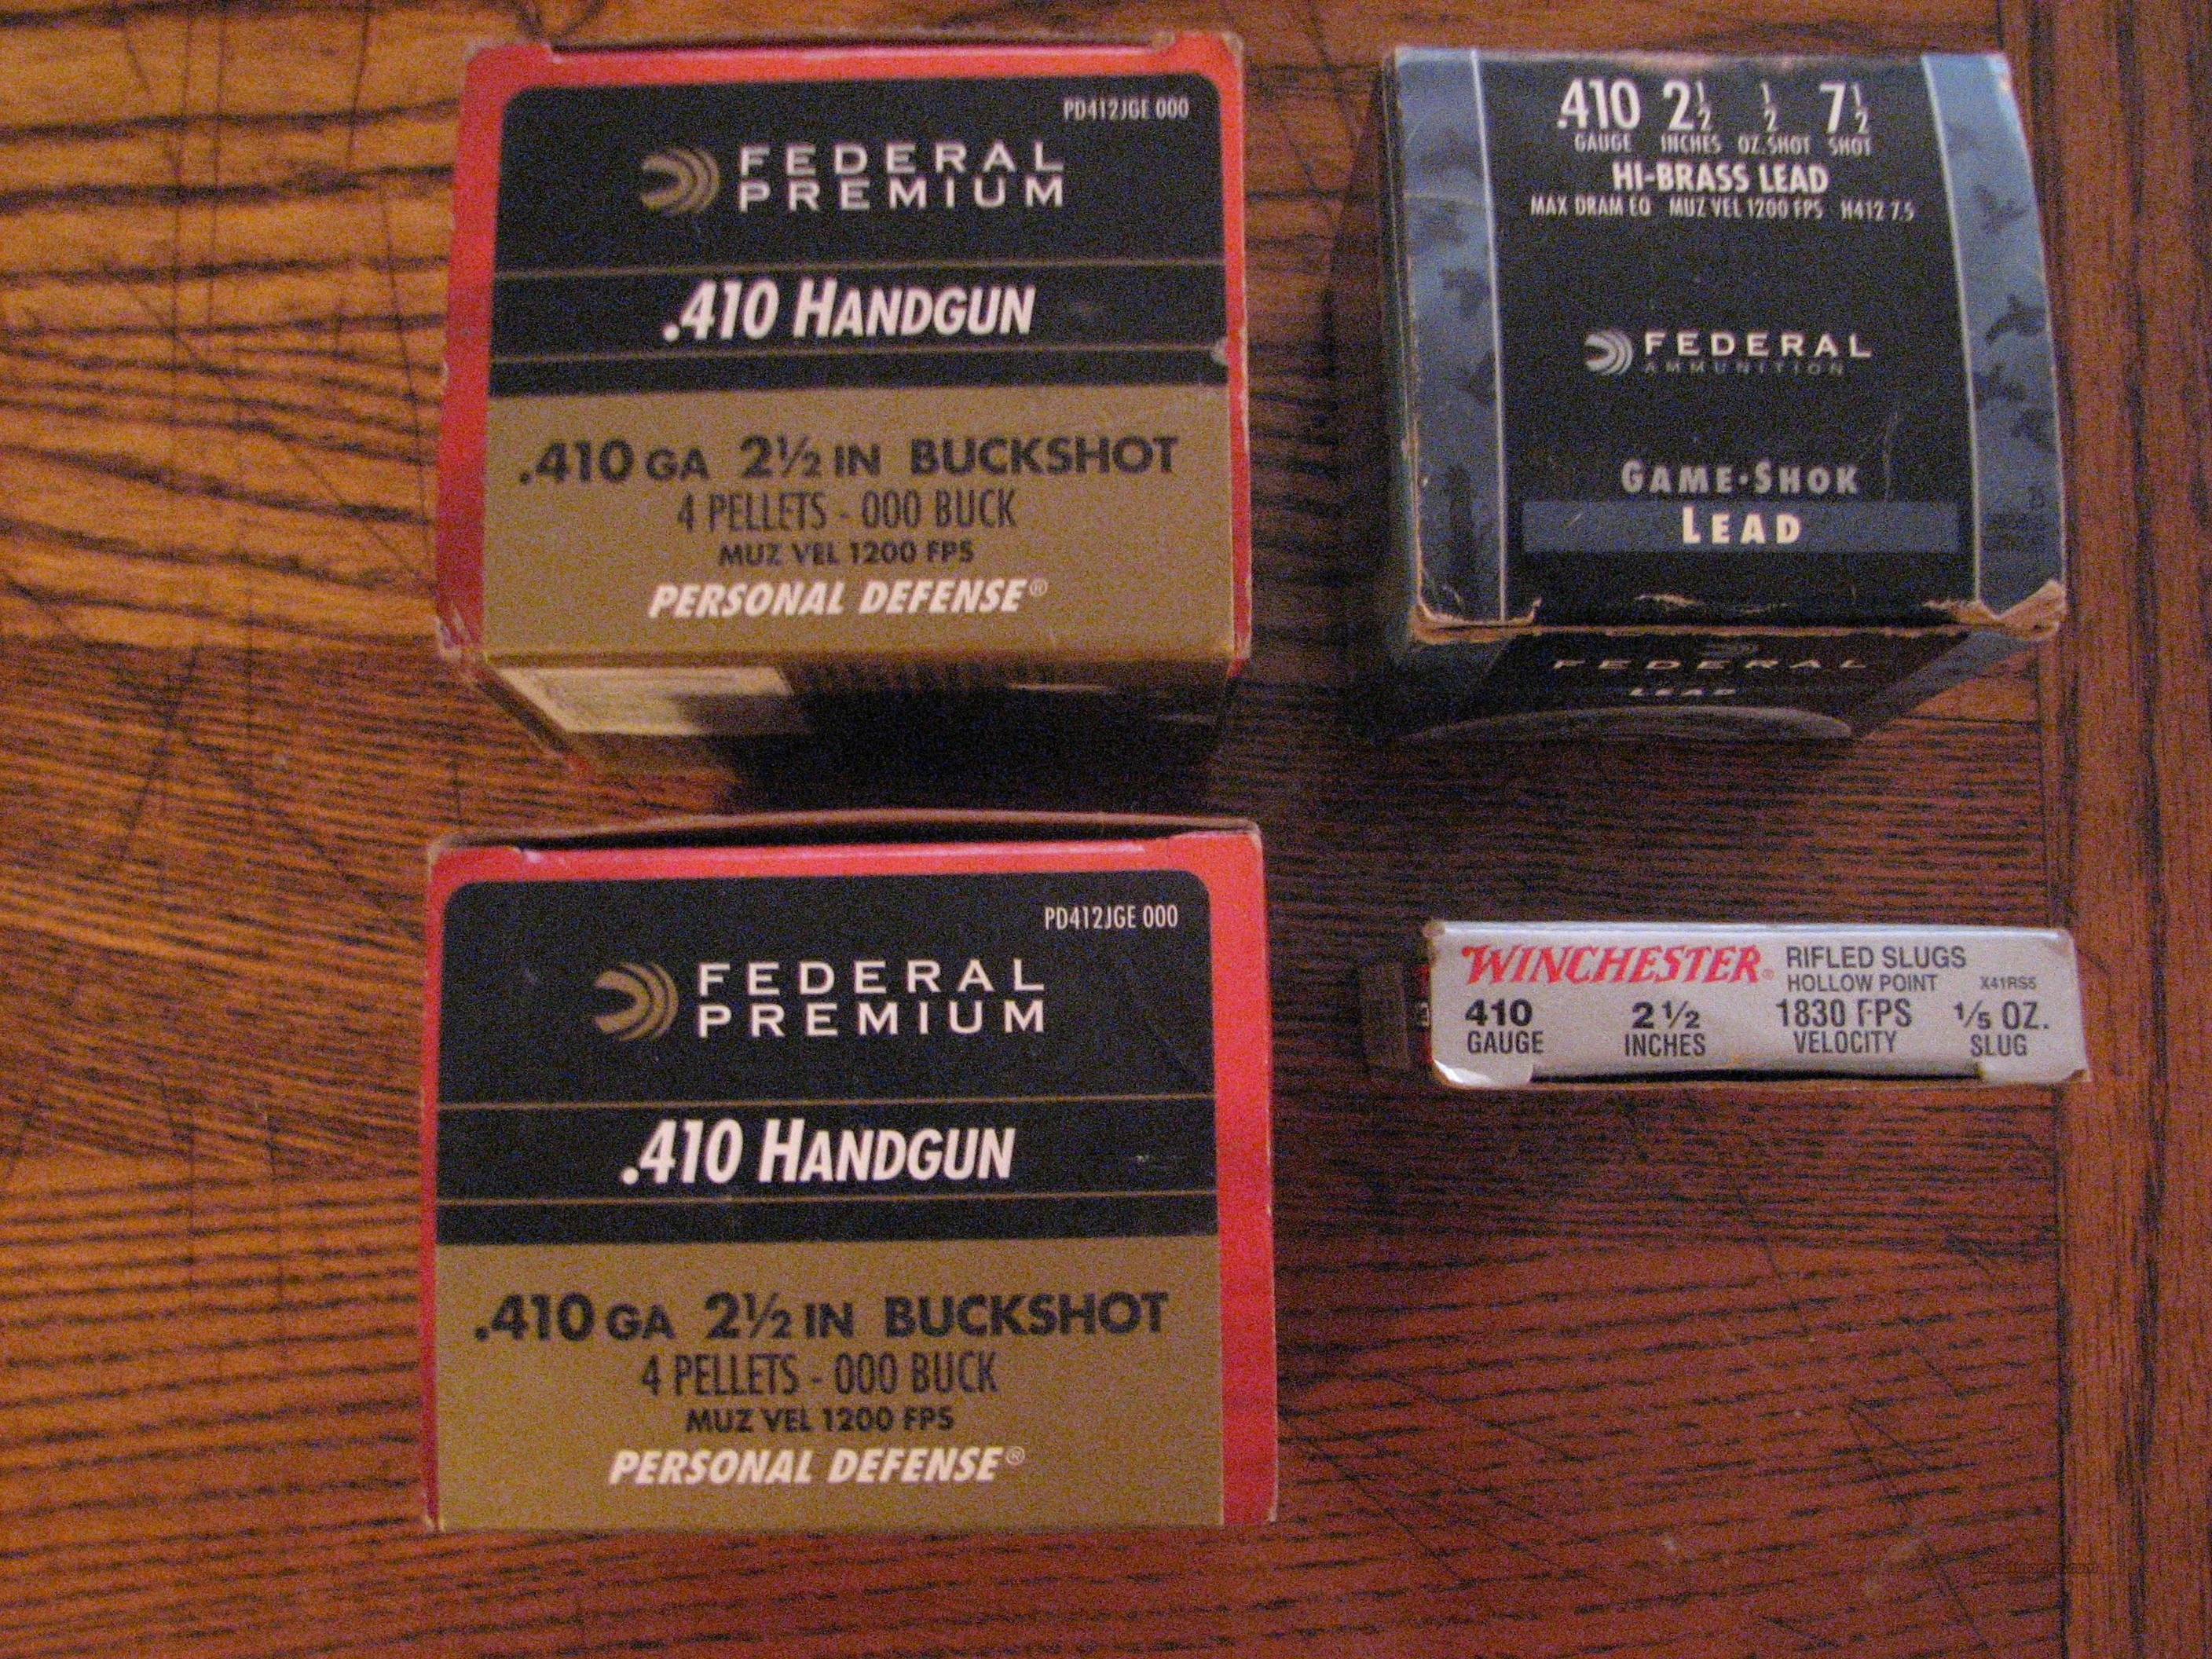 Federal premium .410 Handgun ammo 000 Buck   Non-Guns > Ammunition